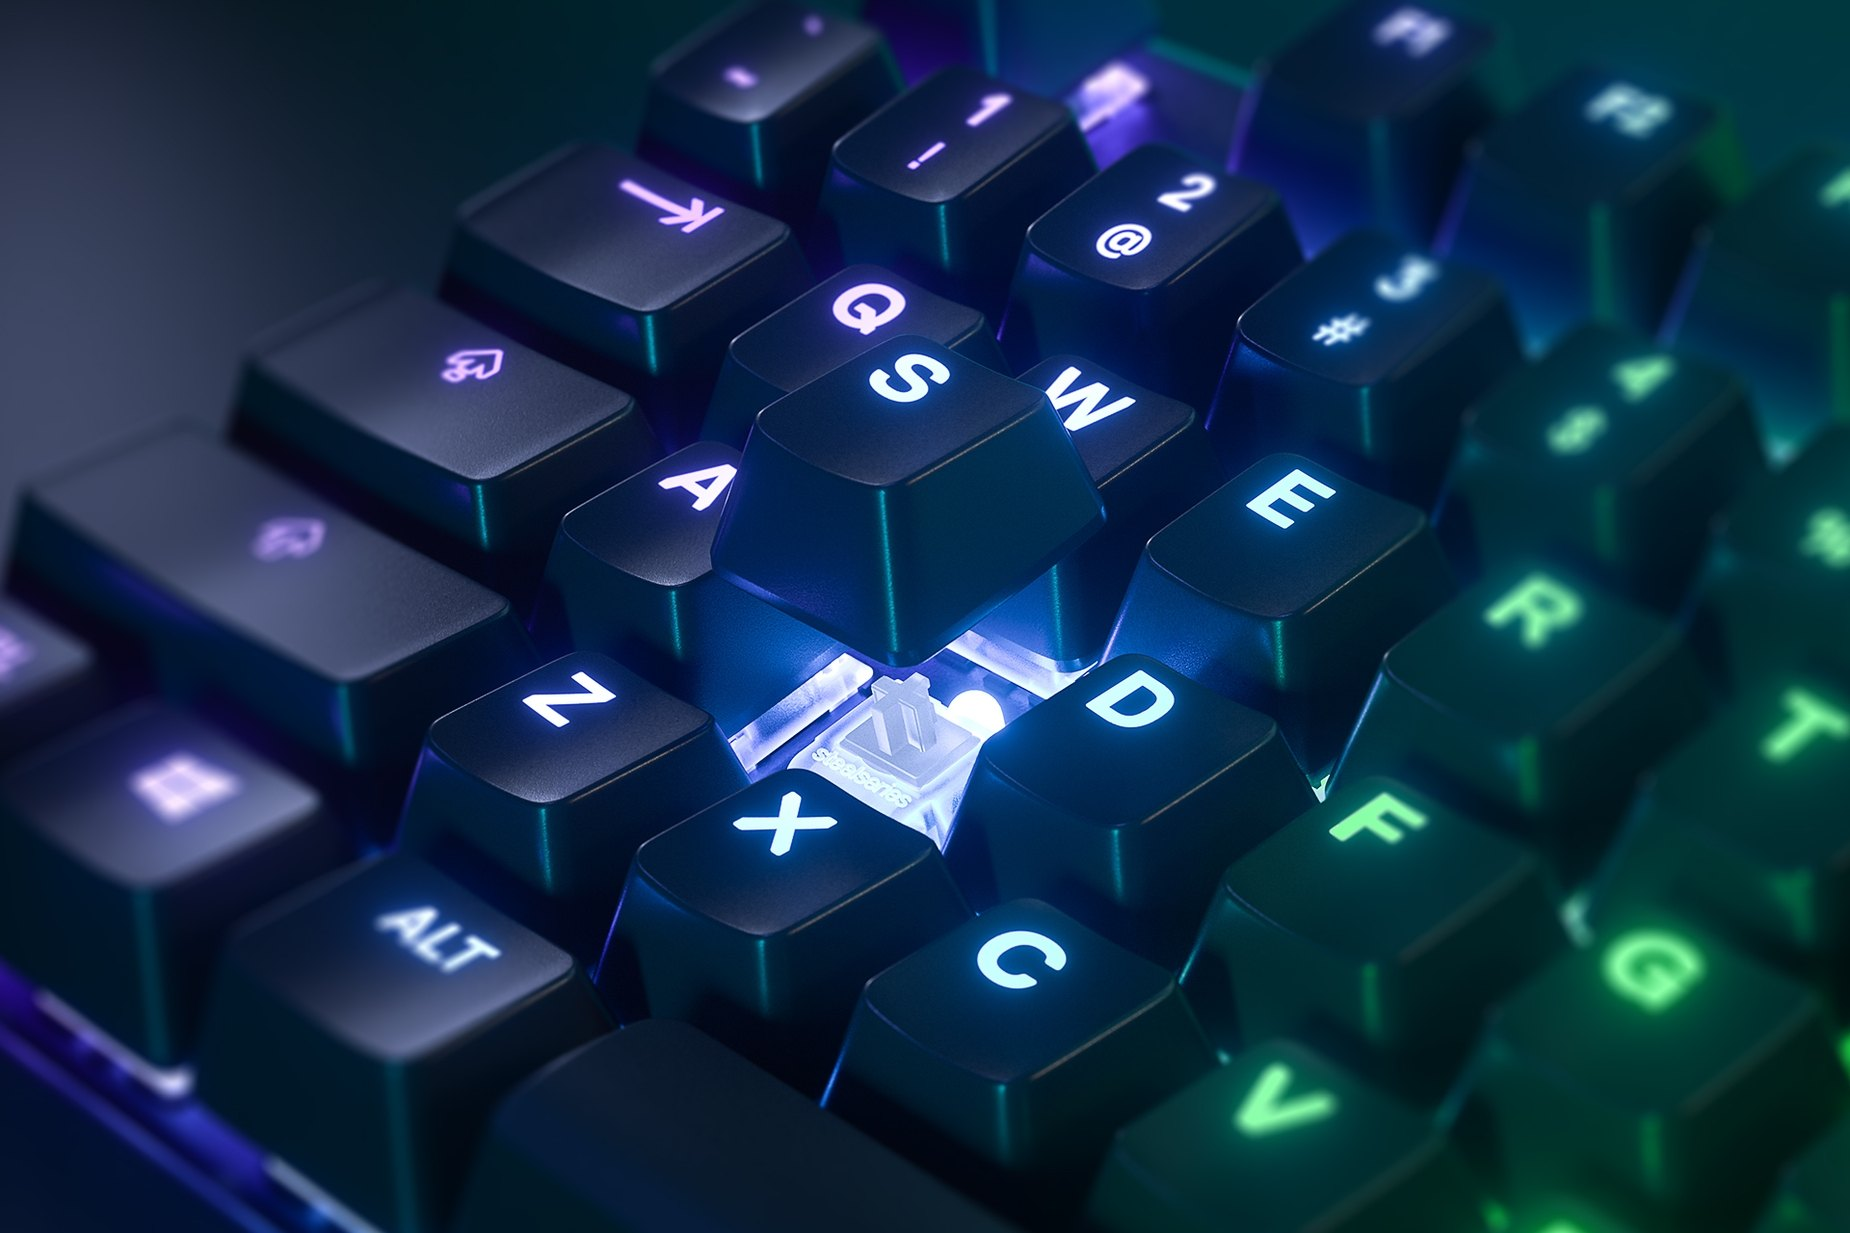 Zoomed in view of a single key on the German - Apex Pro TKL gaming keyboard, the key is raised up to show the SteelSeries OmniPoint Adjustable Mechanical Switch underneath